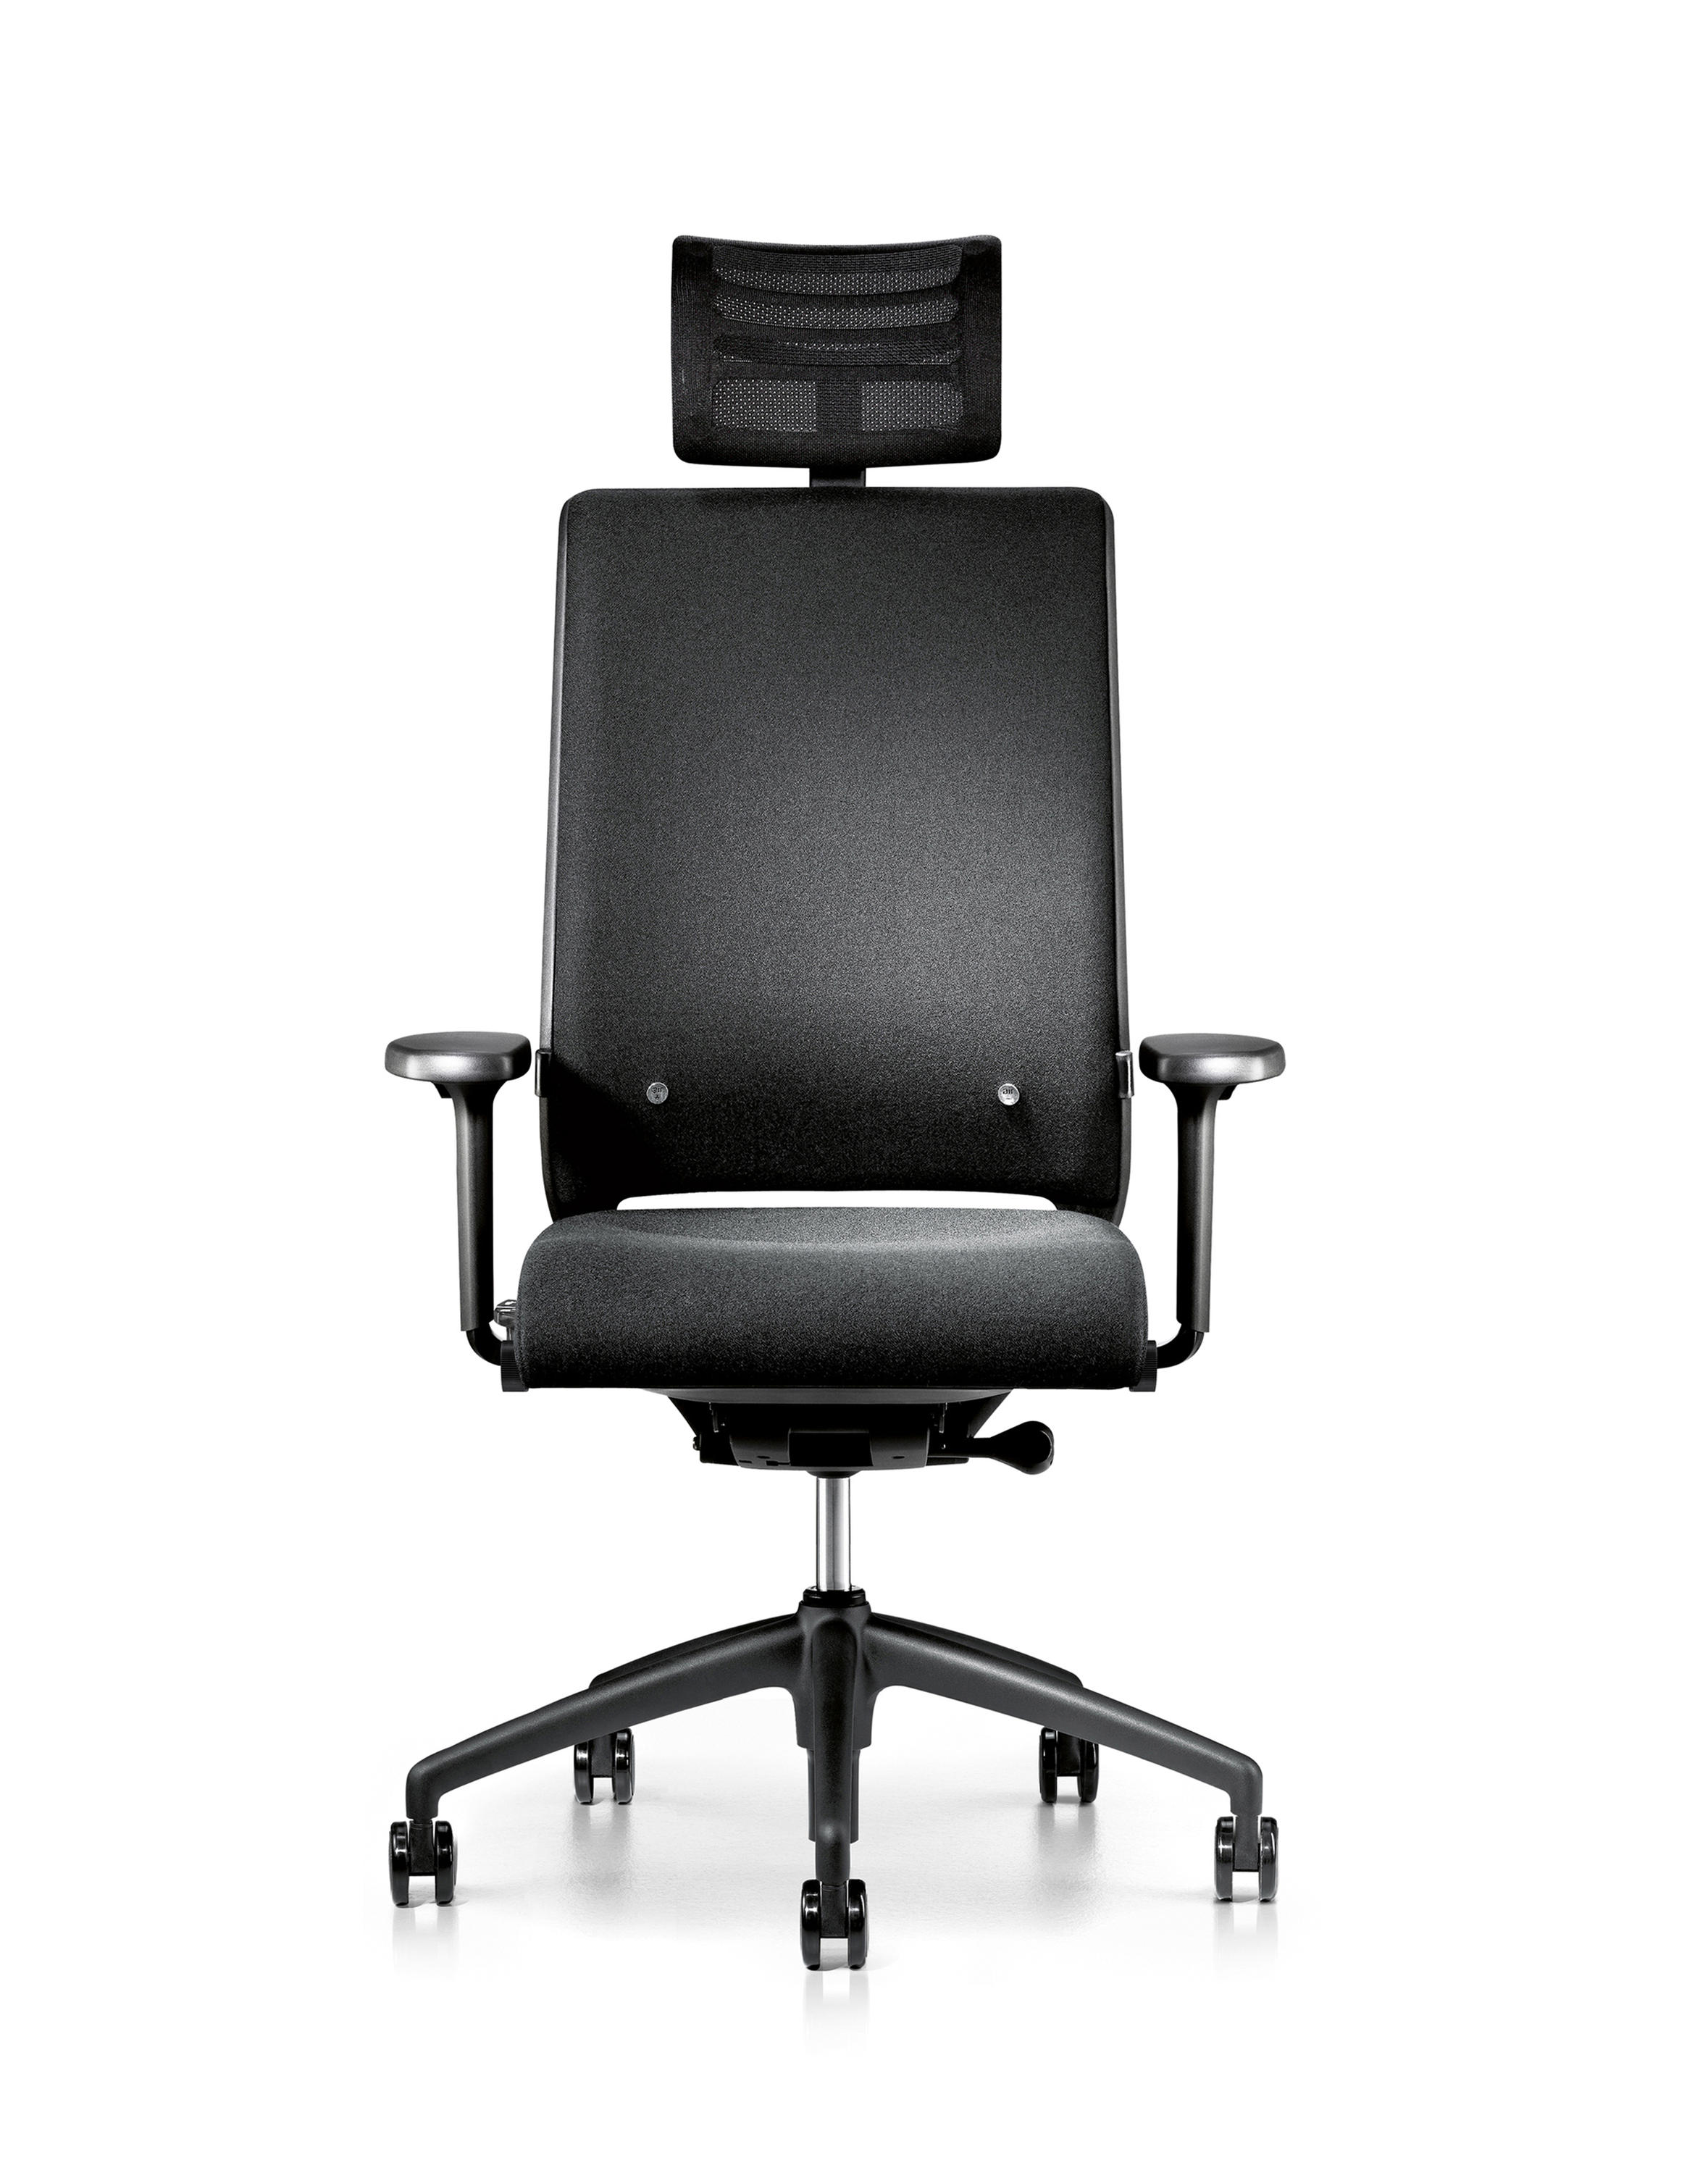 hero 265h management chairs from interstuhl b rom bel gmbh co kg architonic. Black Bedroom Furniture Sets. Home Design Ideas